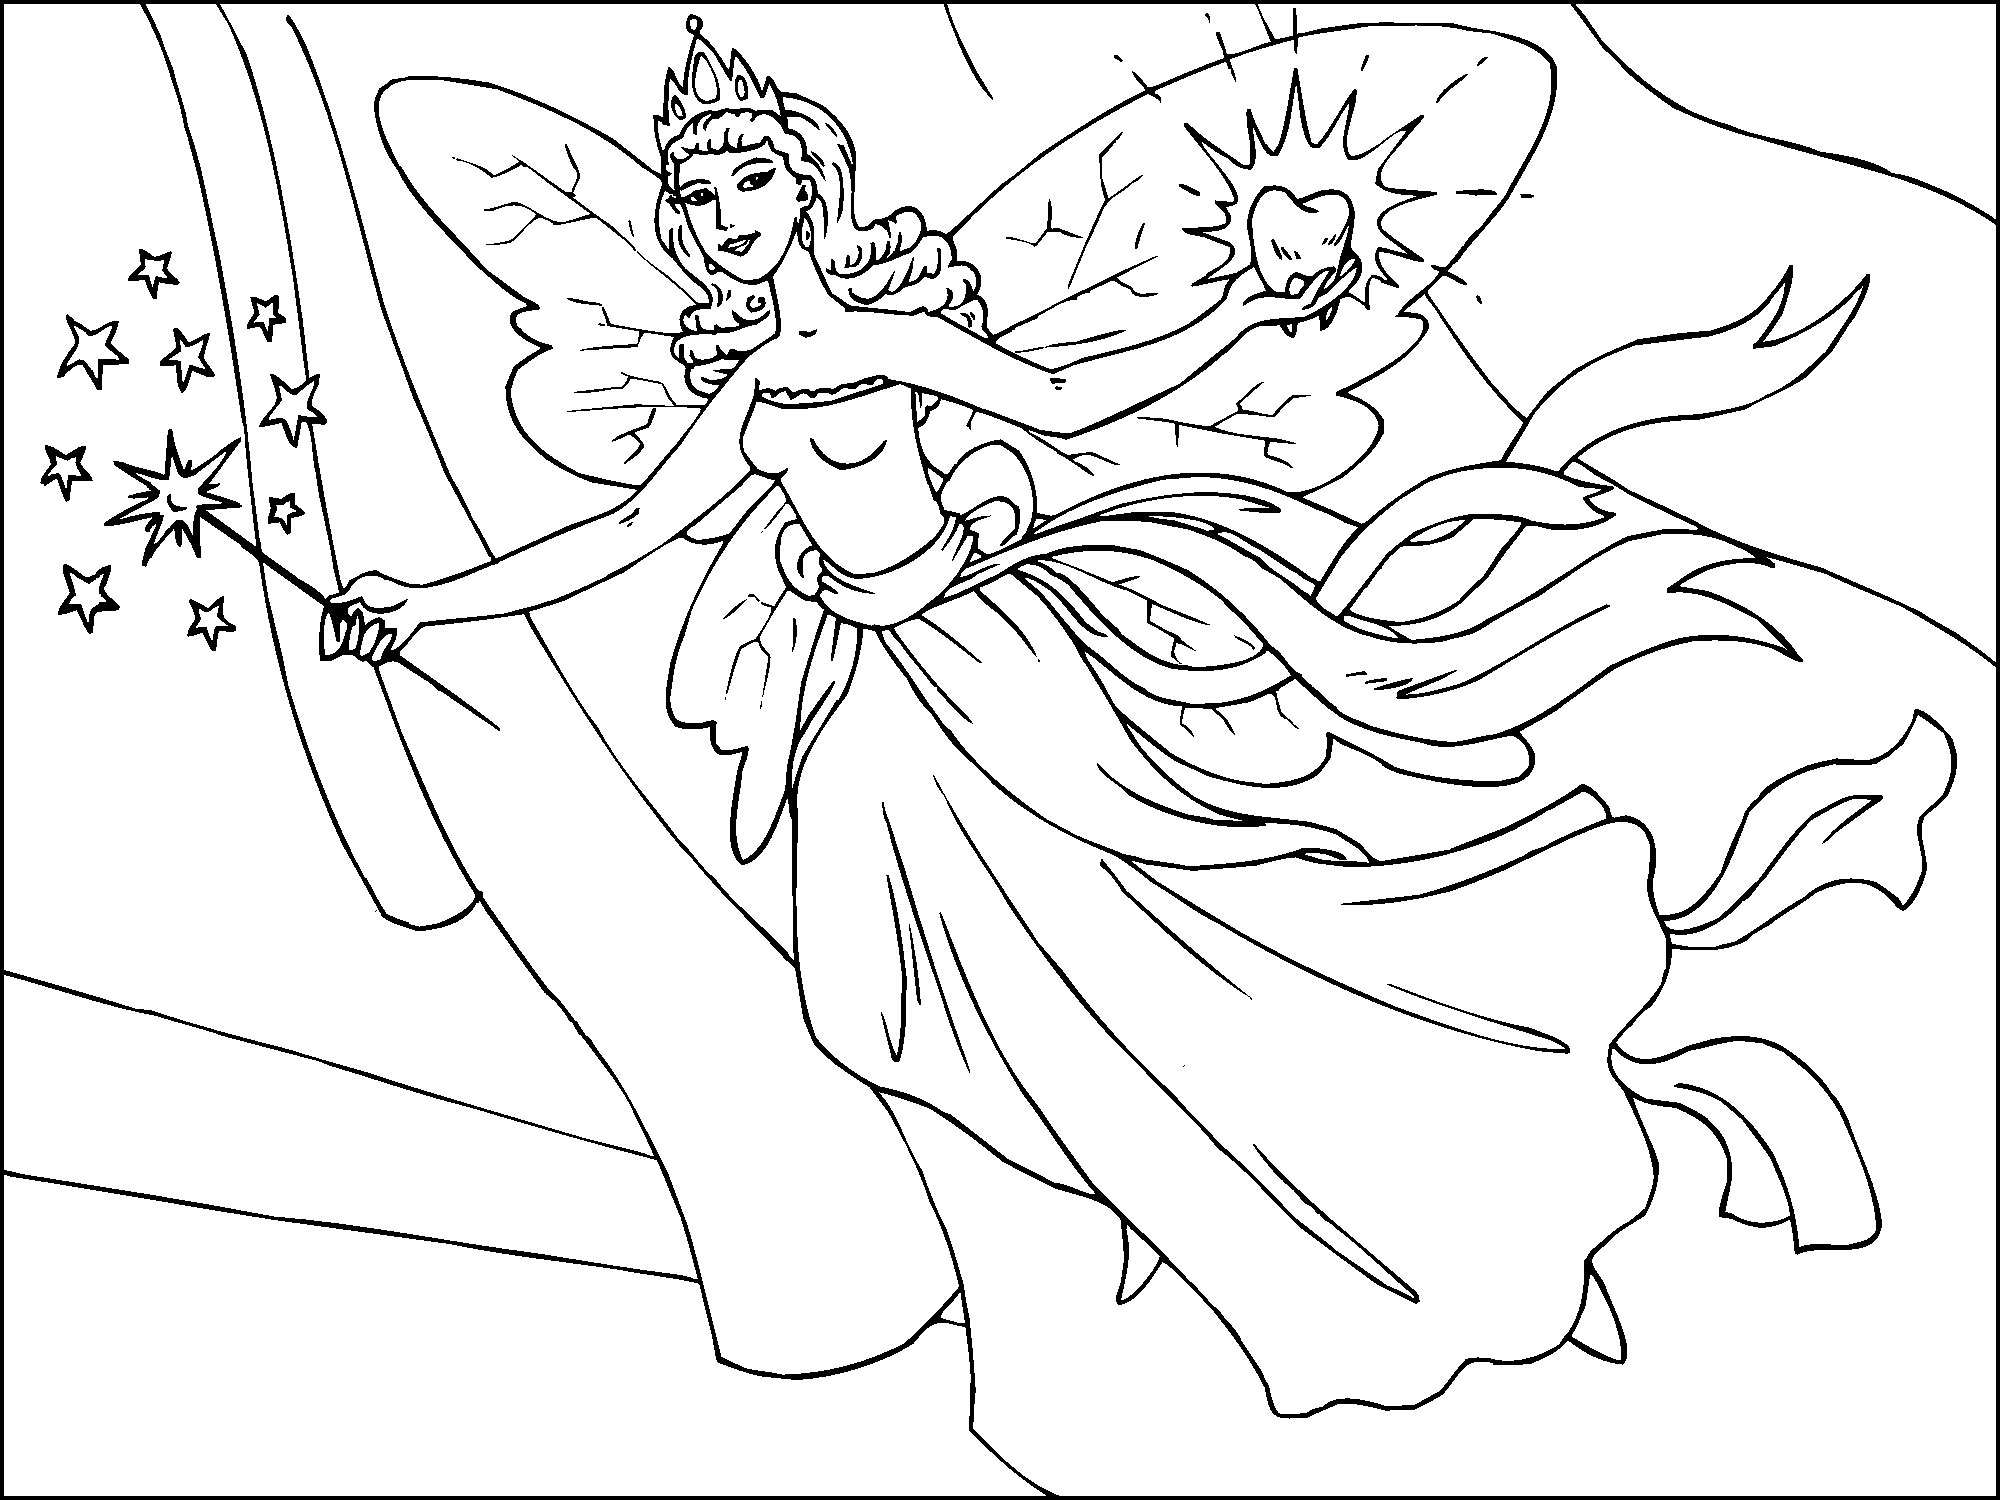 Coloring Pages Rainbow Fairy Coloring Pages free printable fairy coloring pages for kids to print